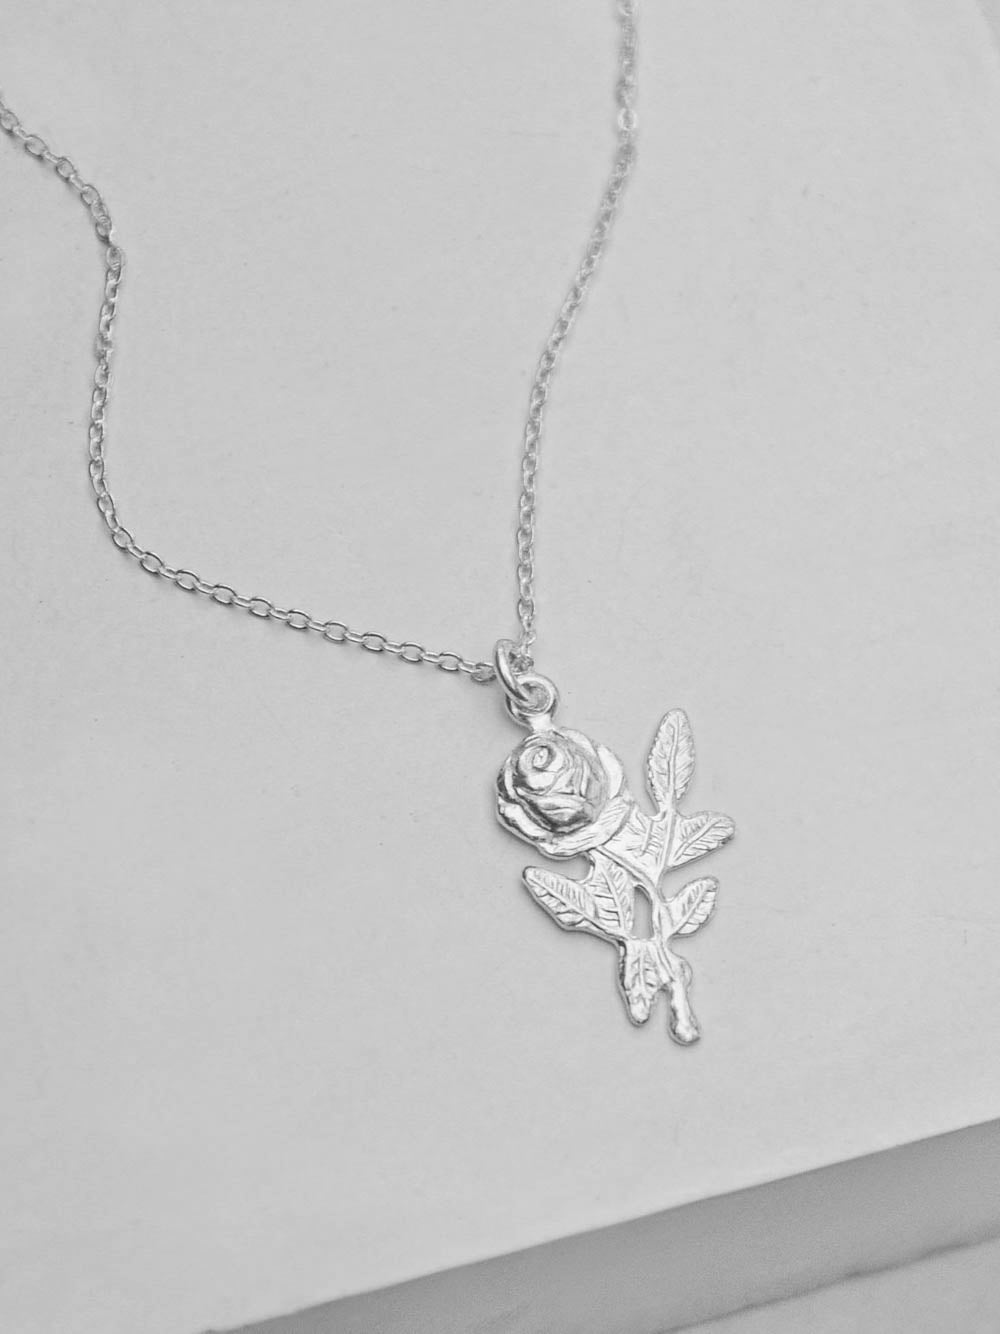 Sterling Silver Rose Charm Necklace by The Faint Hearted Jewelry